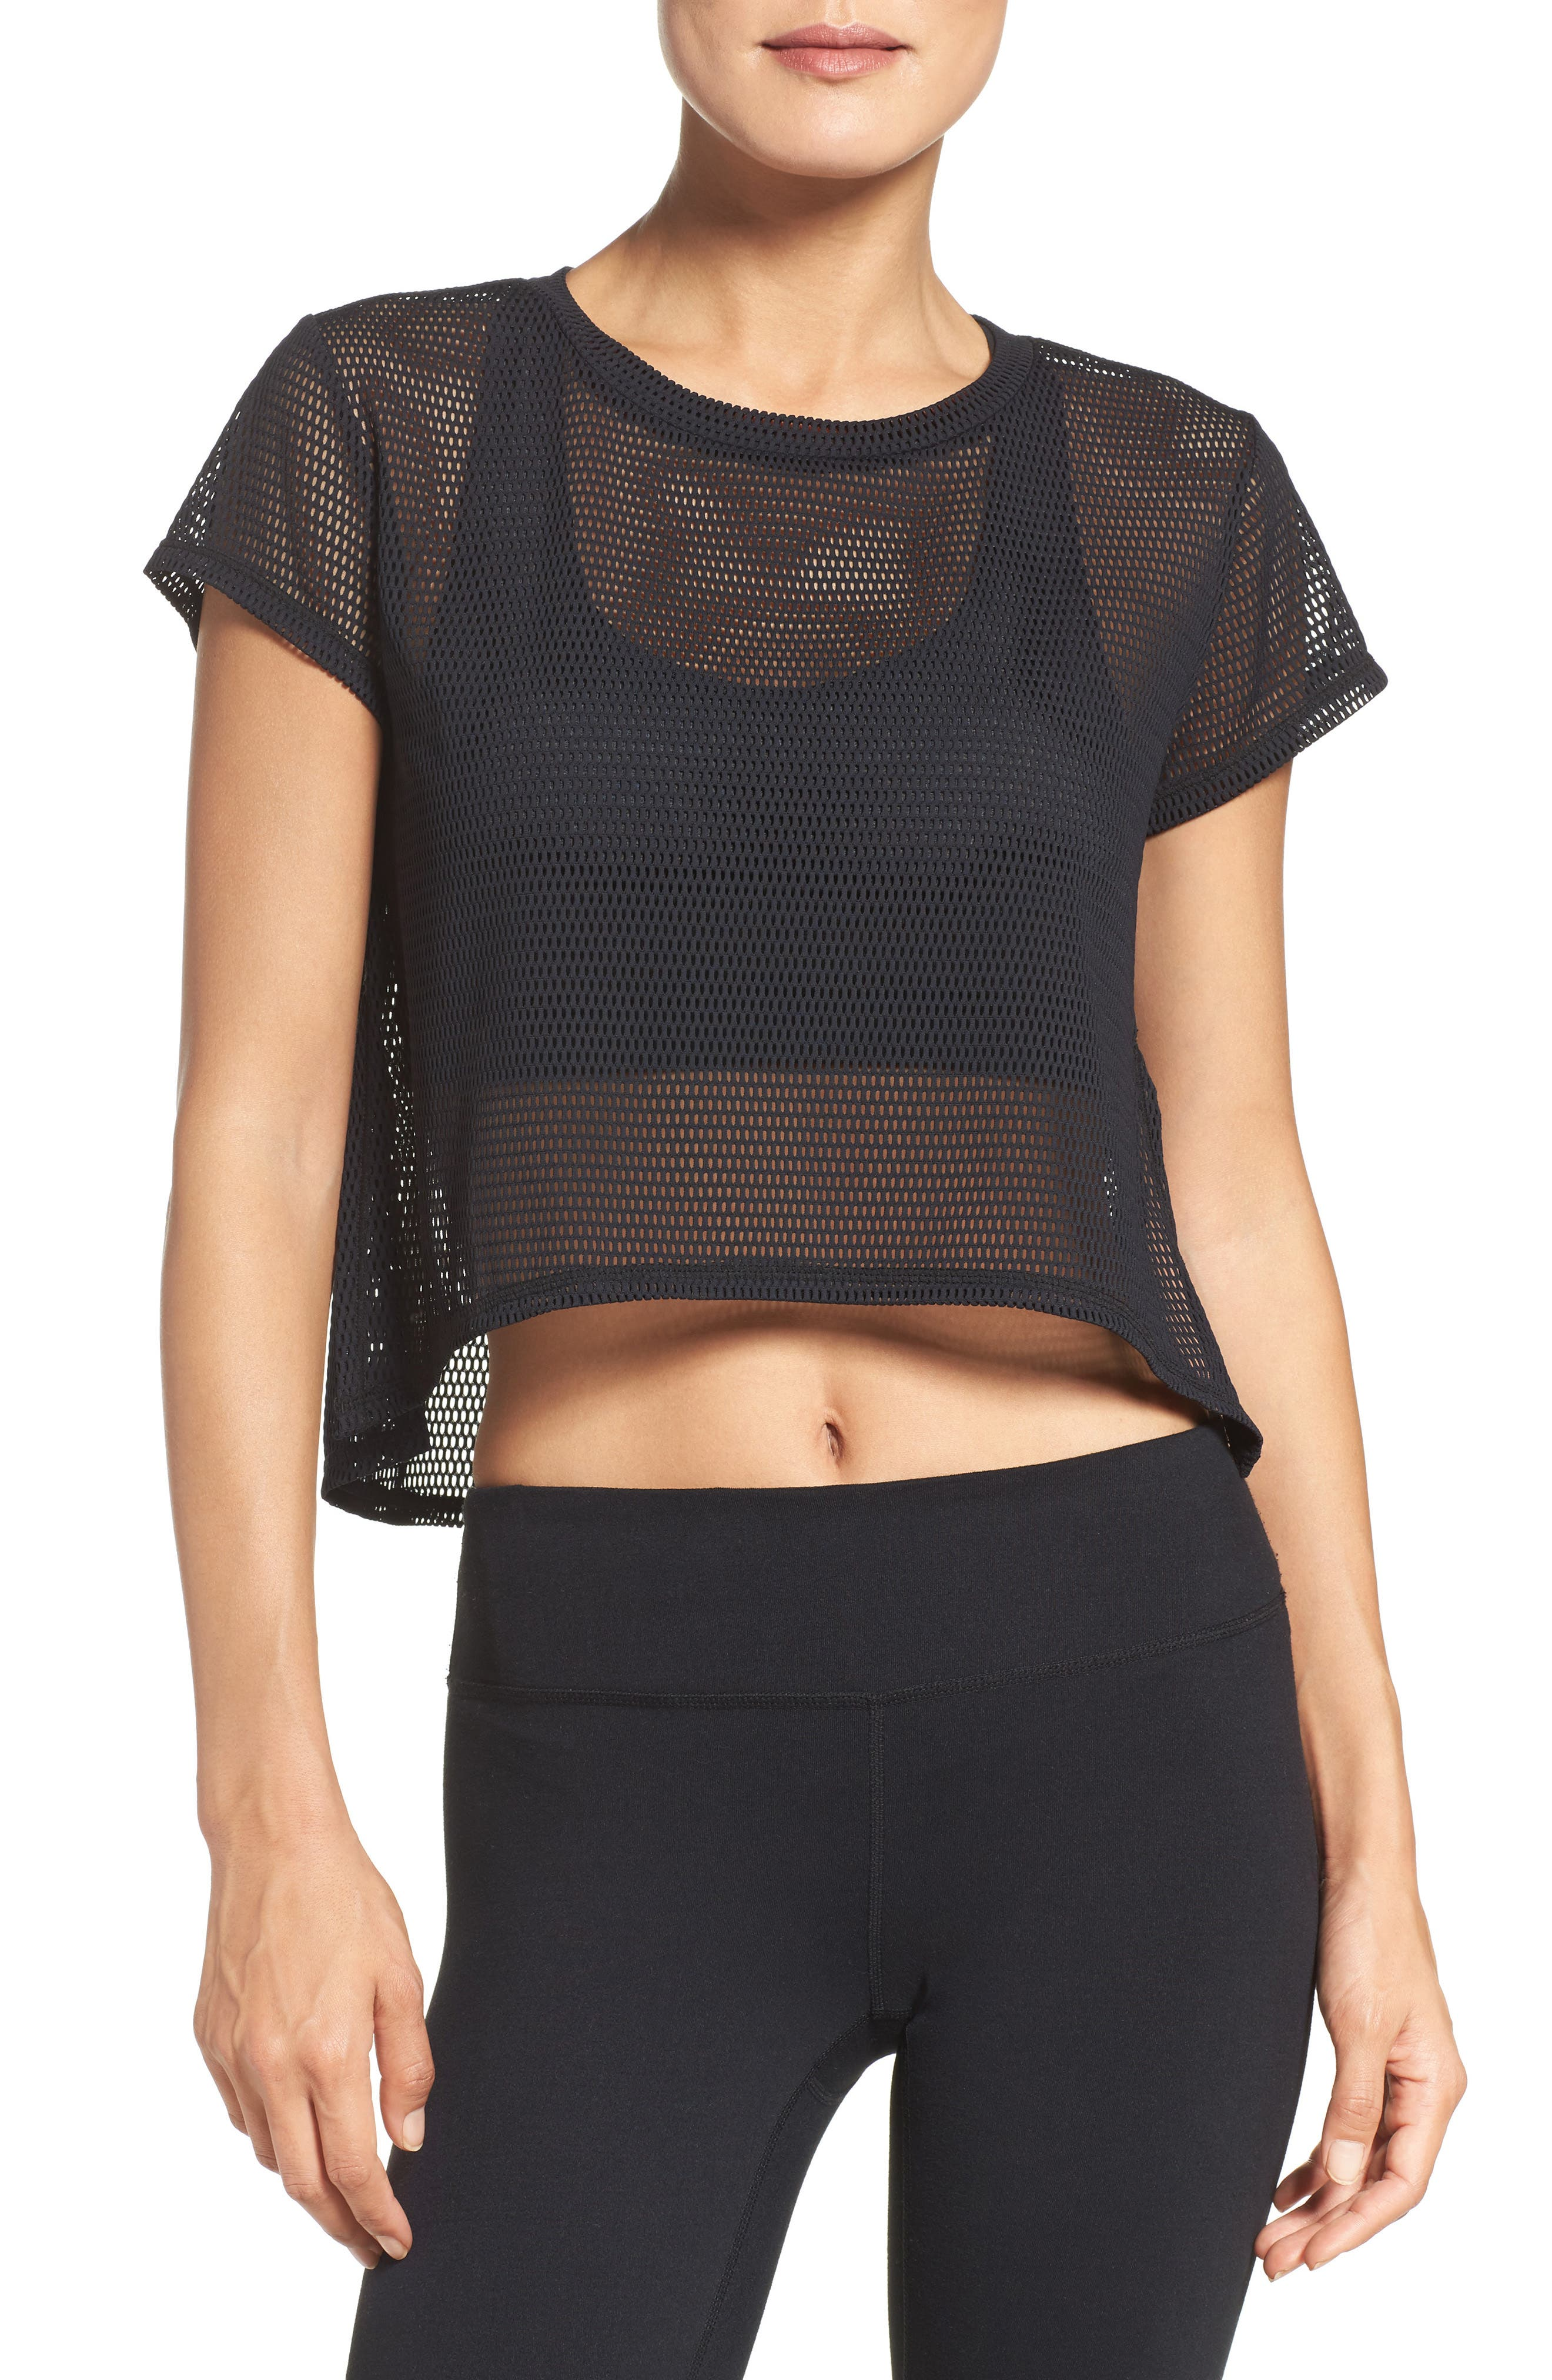 ZELLA, Meshin' Around Crop Tee, Main thumbnail 1, color, 001